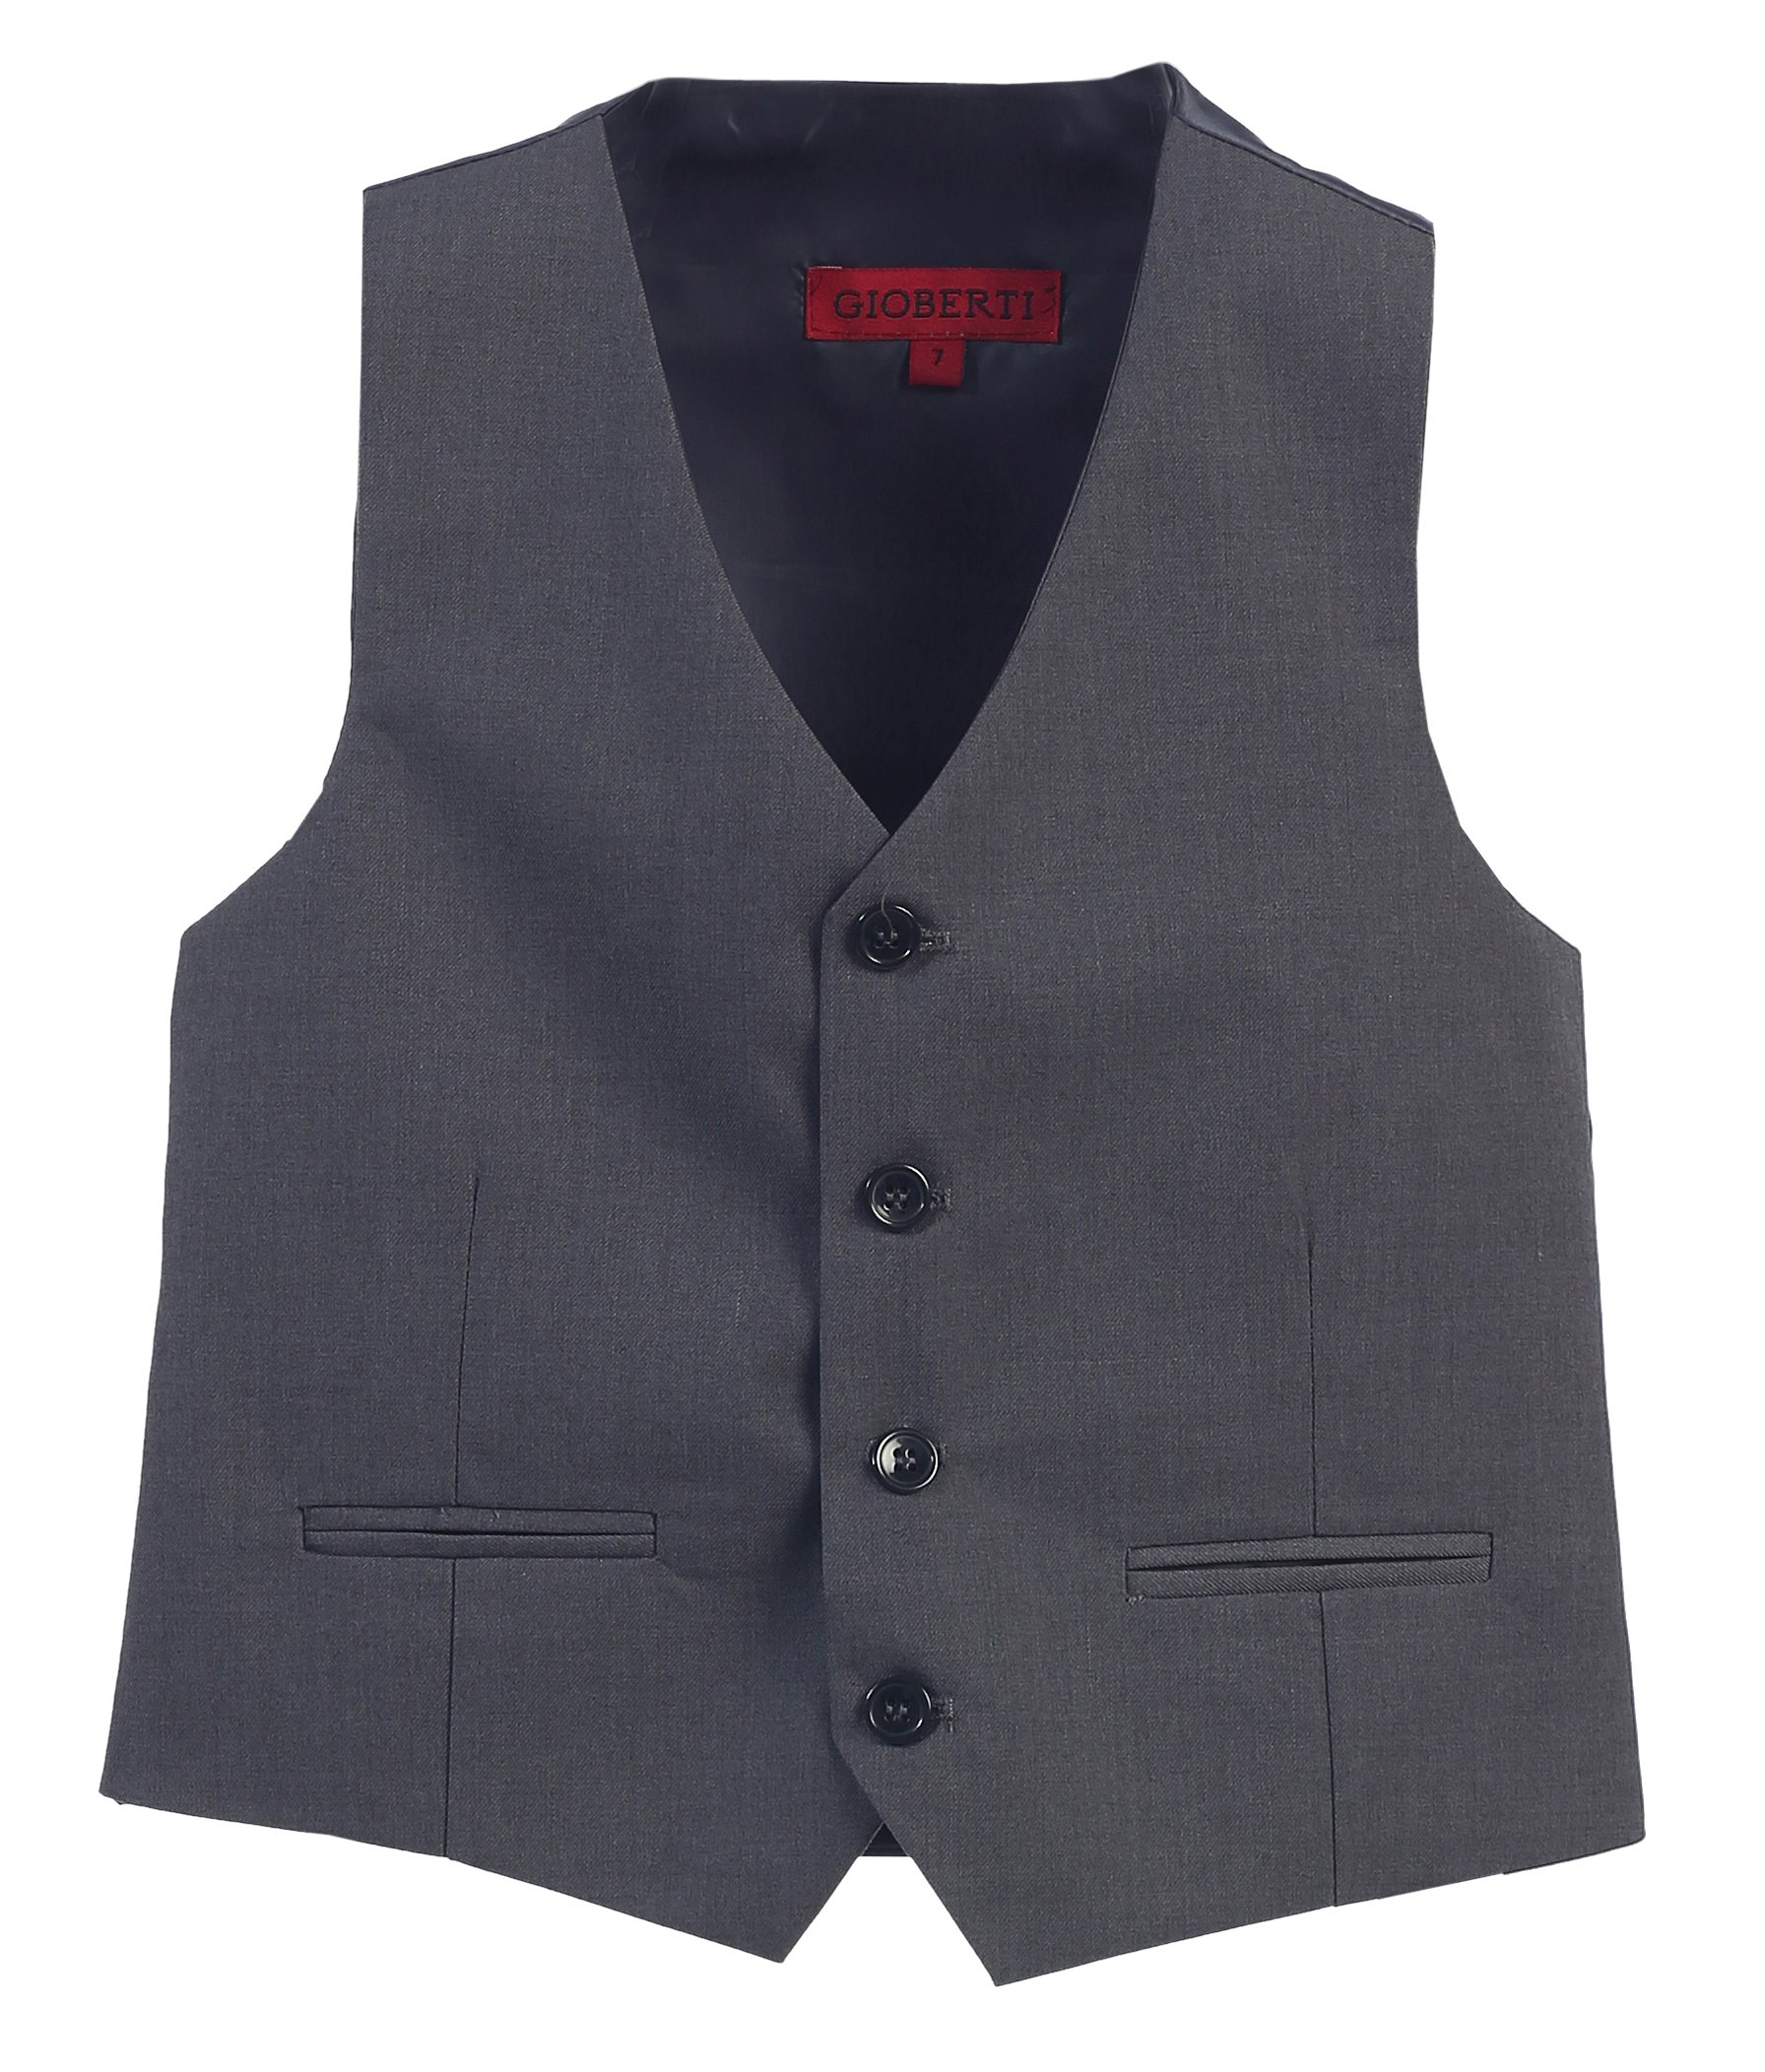 Gioberti Boy's 4 Button Formal Suit Vest, Charcoal, Size 7